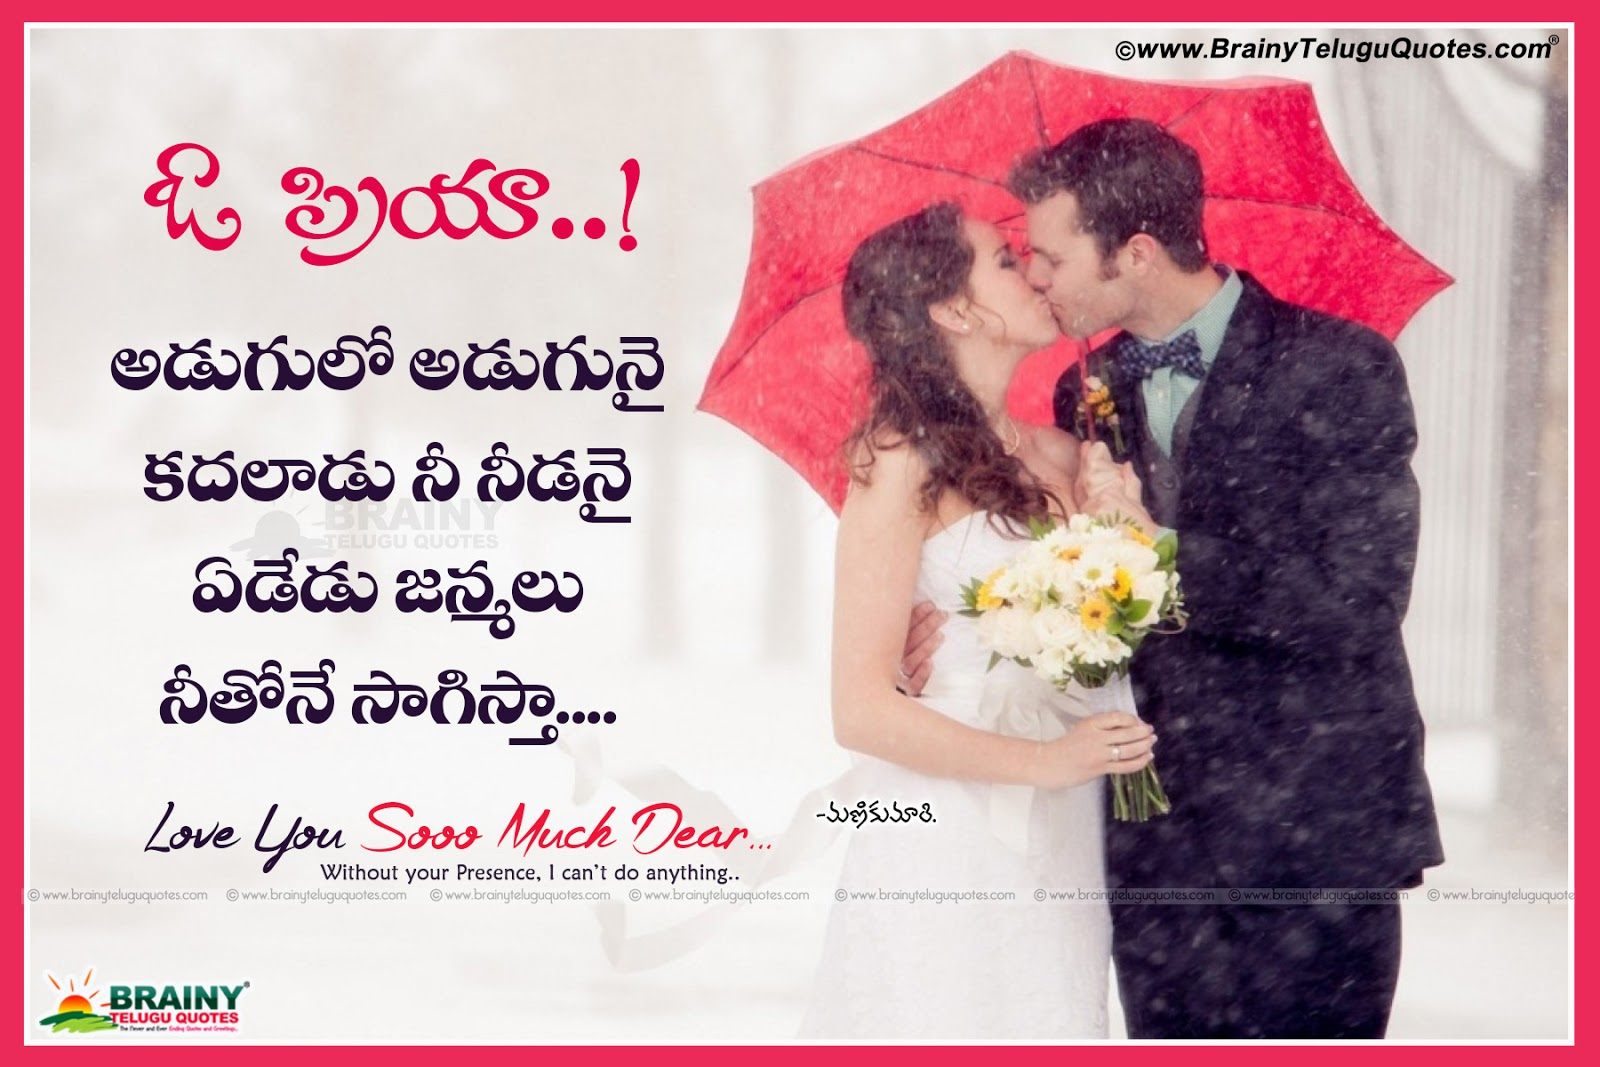 Deep Love Quotes For Her In Tamil : love quotes love messages love sms in telugu,New Telugu Love quotes ...